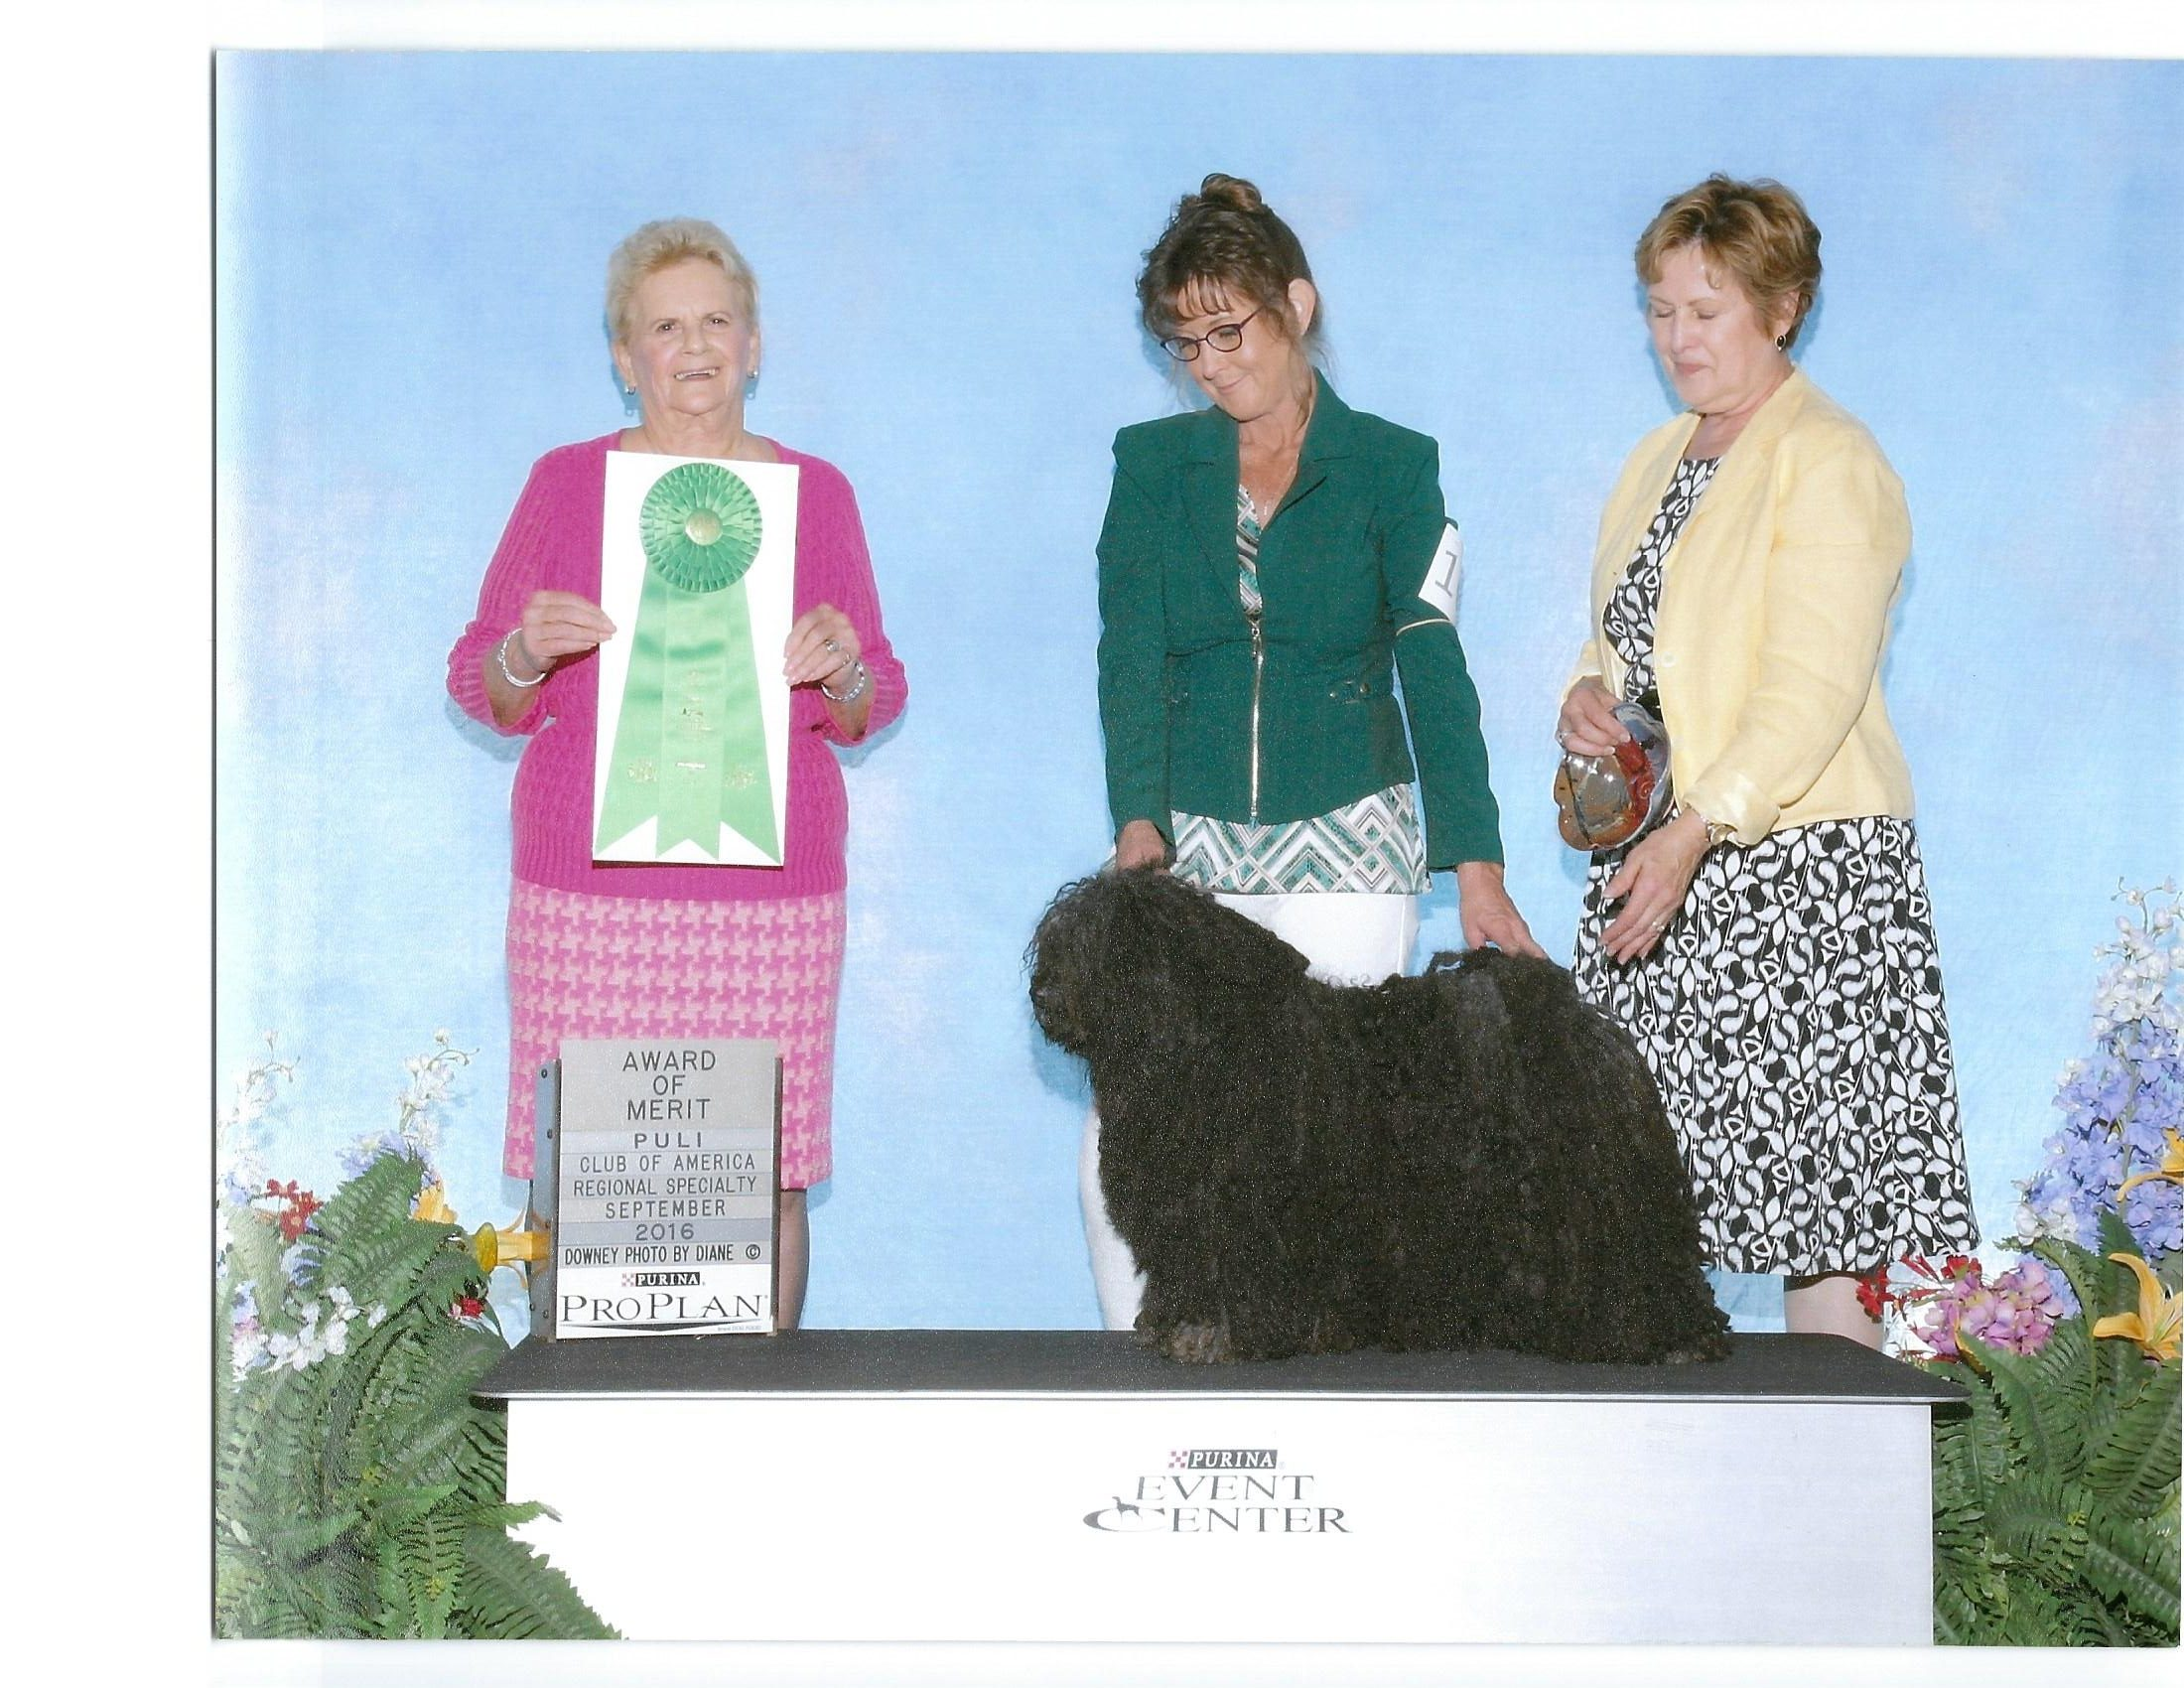 Zoe wins Award of Merit at PCA Regional Specialty in Missouri, September 2016